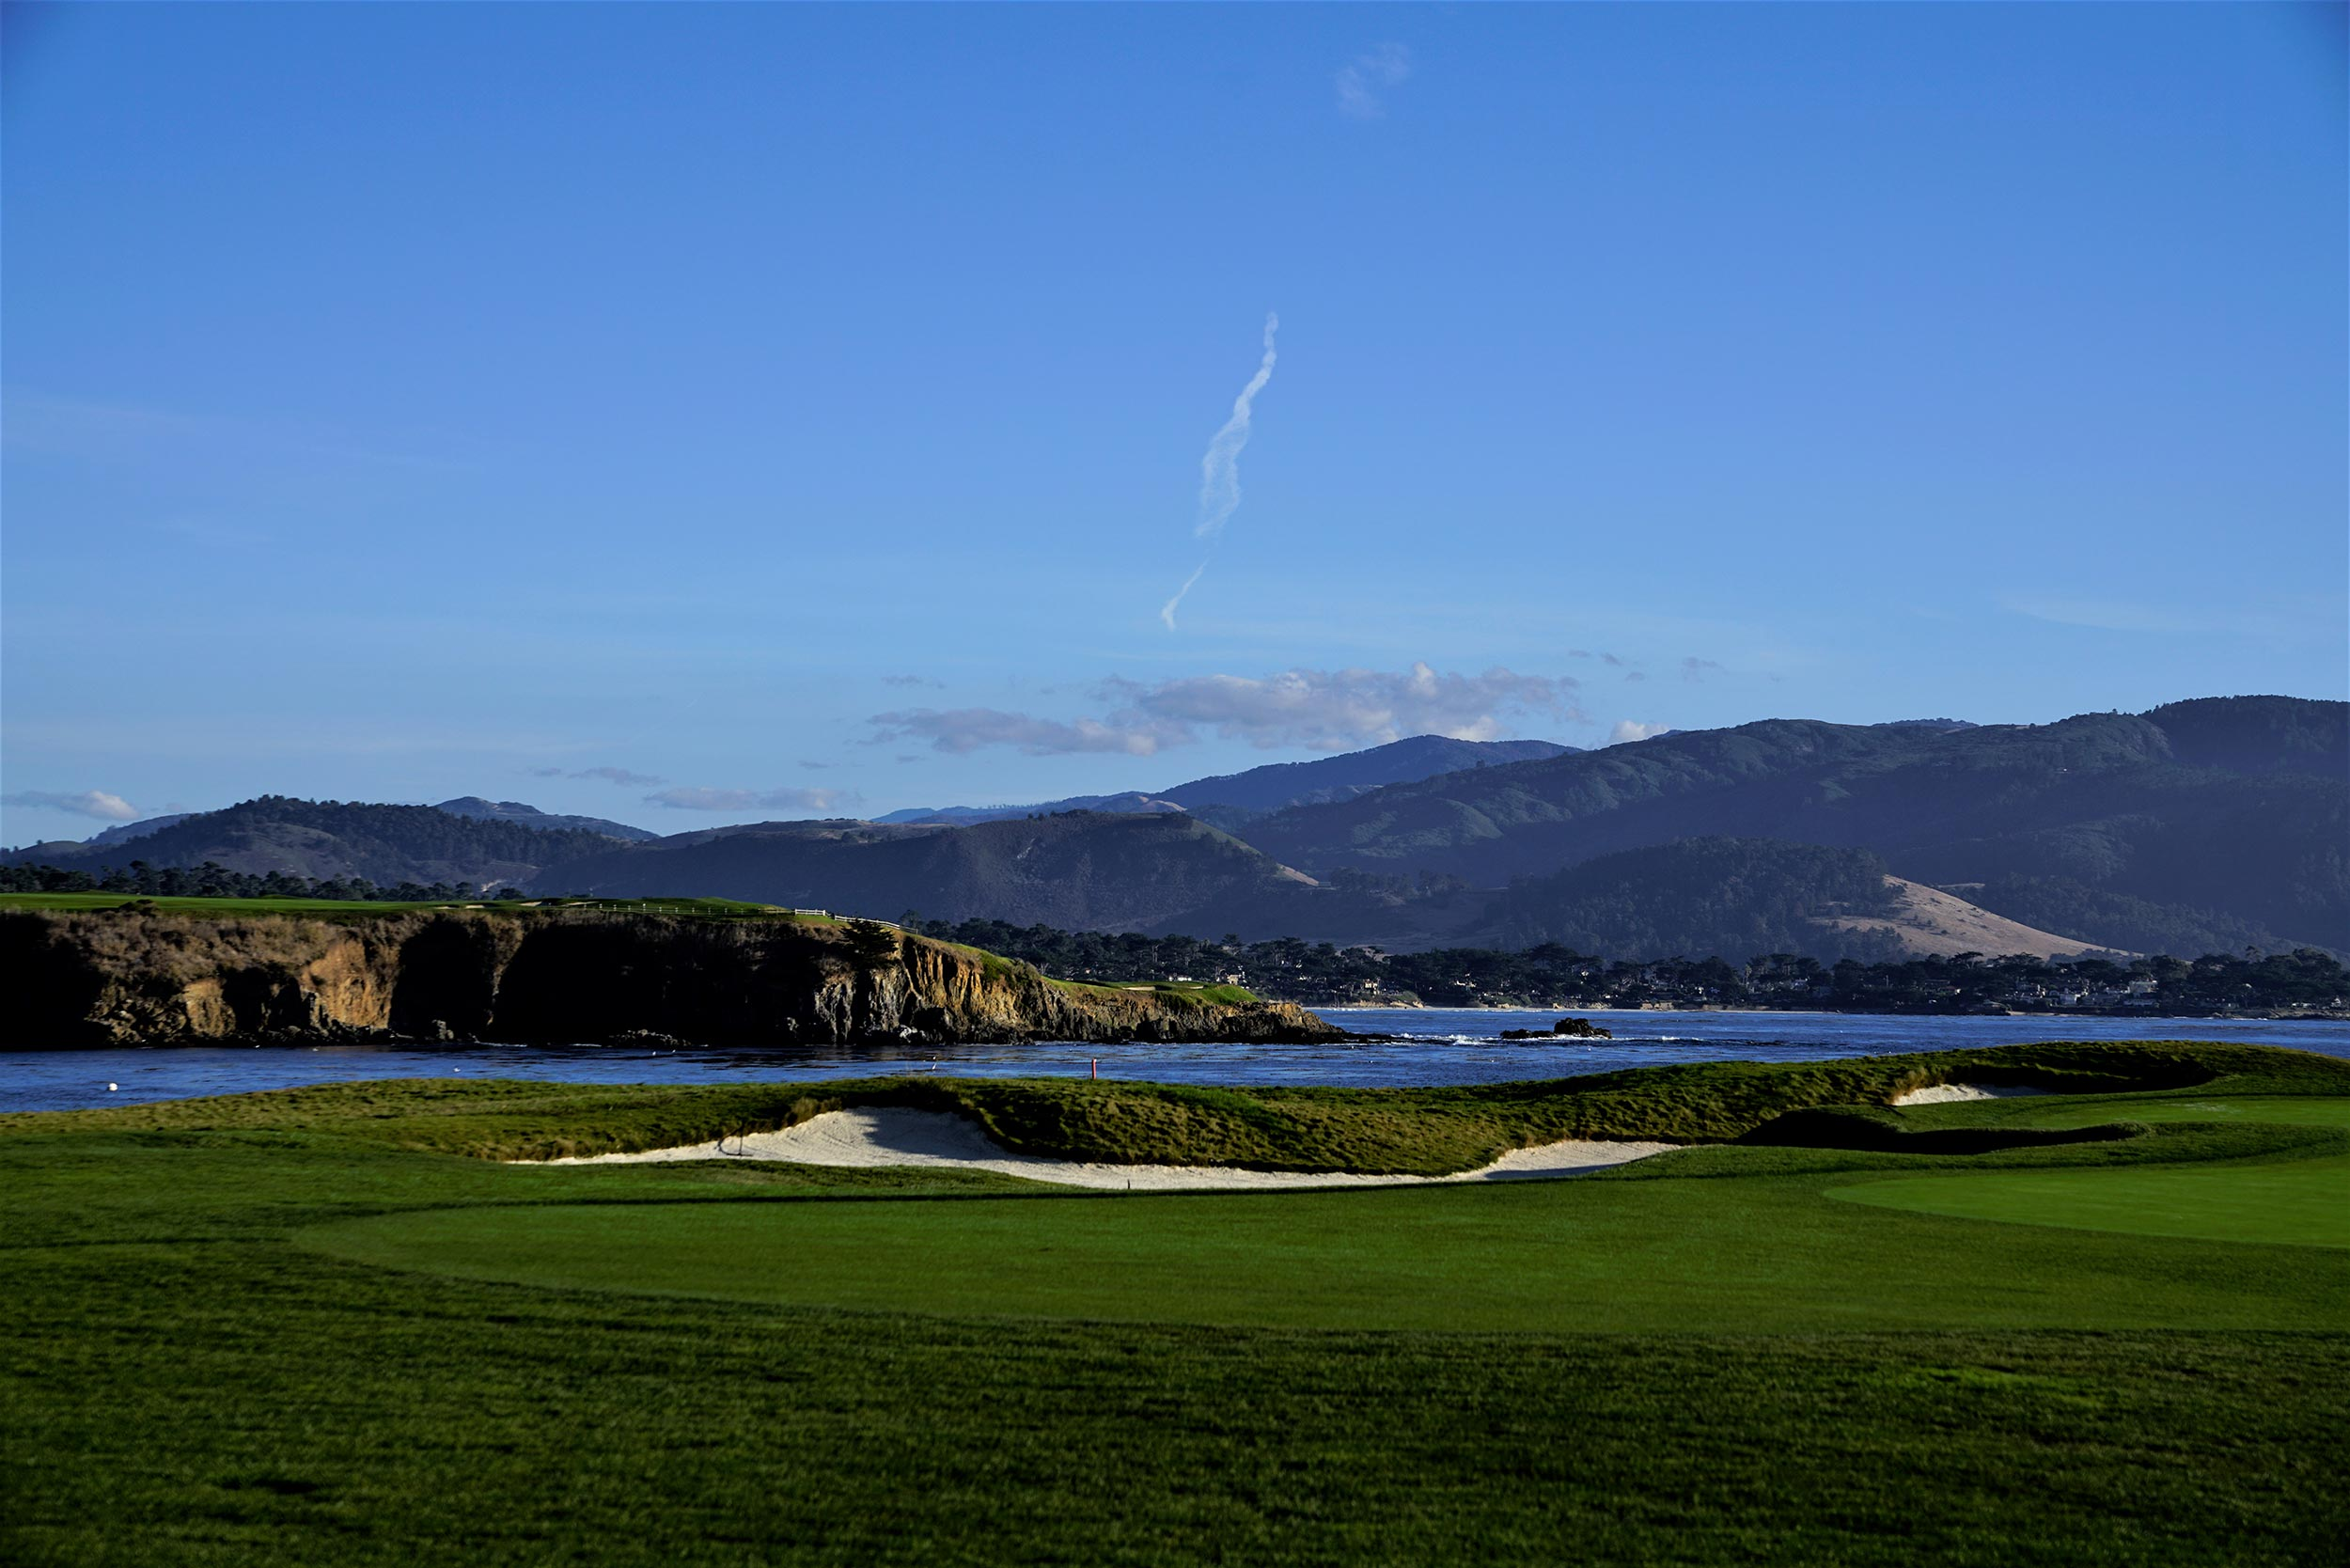 One of many golf courses near Monterey